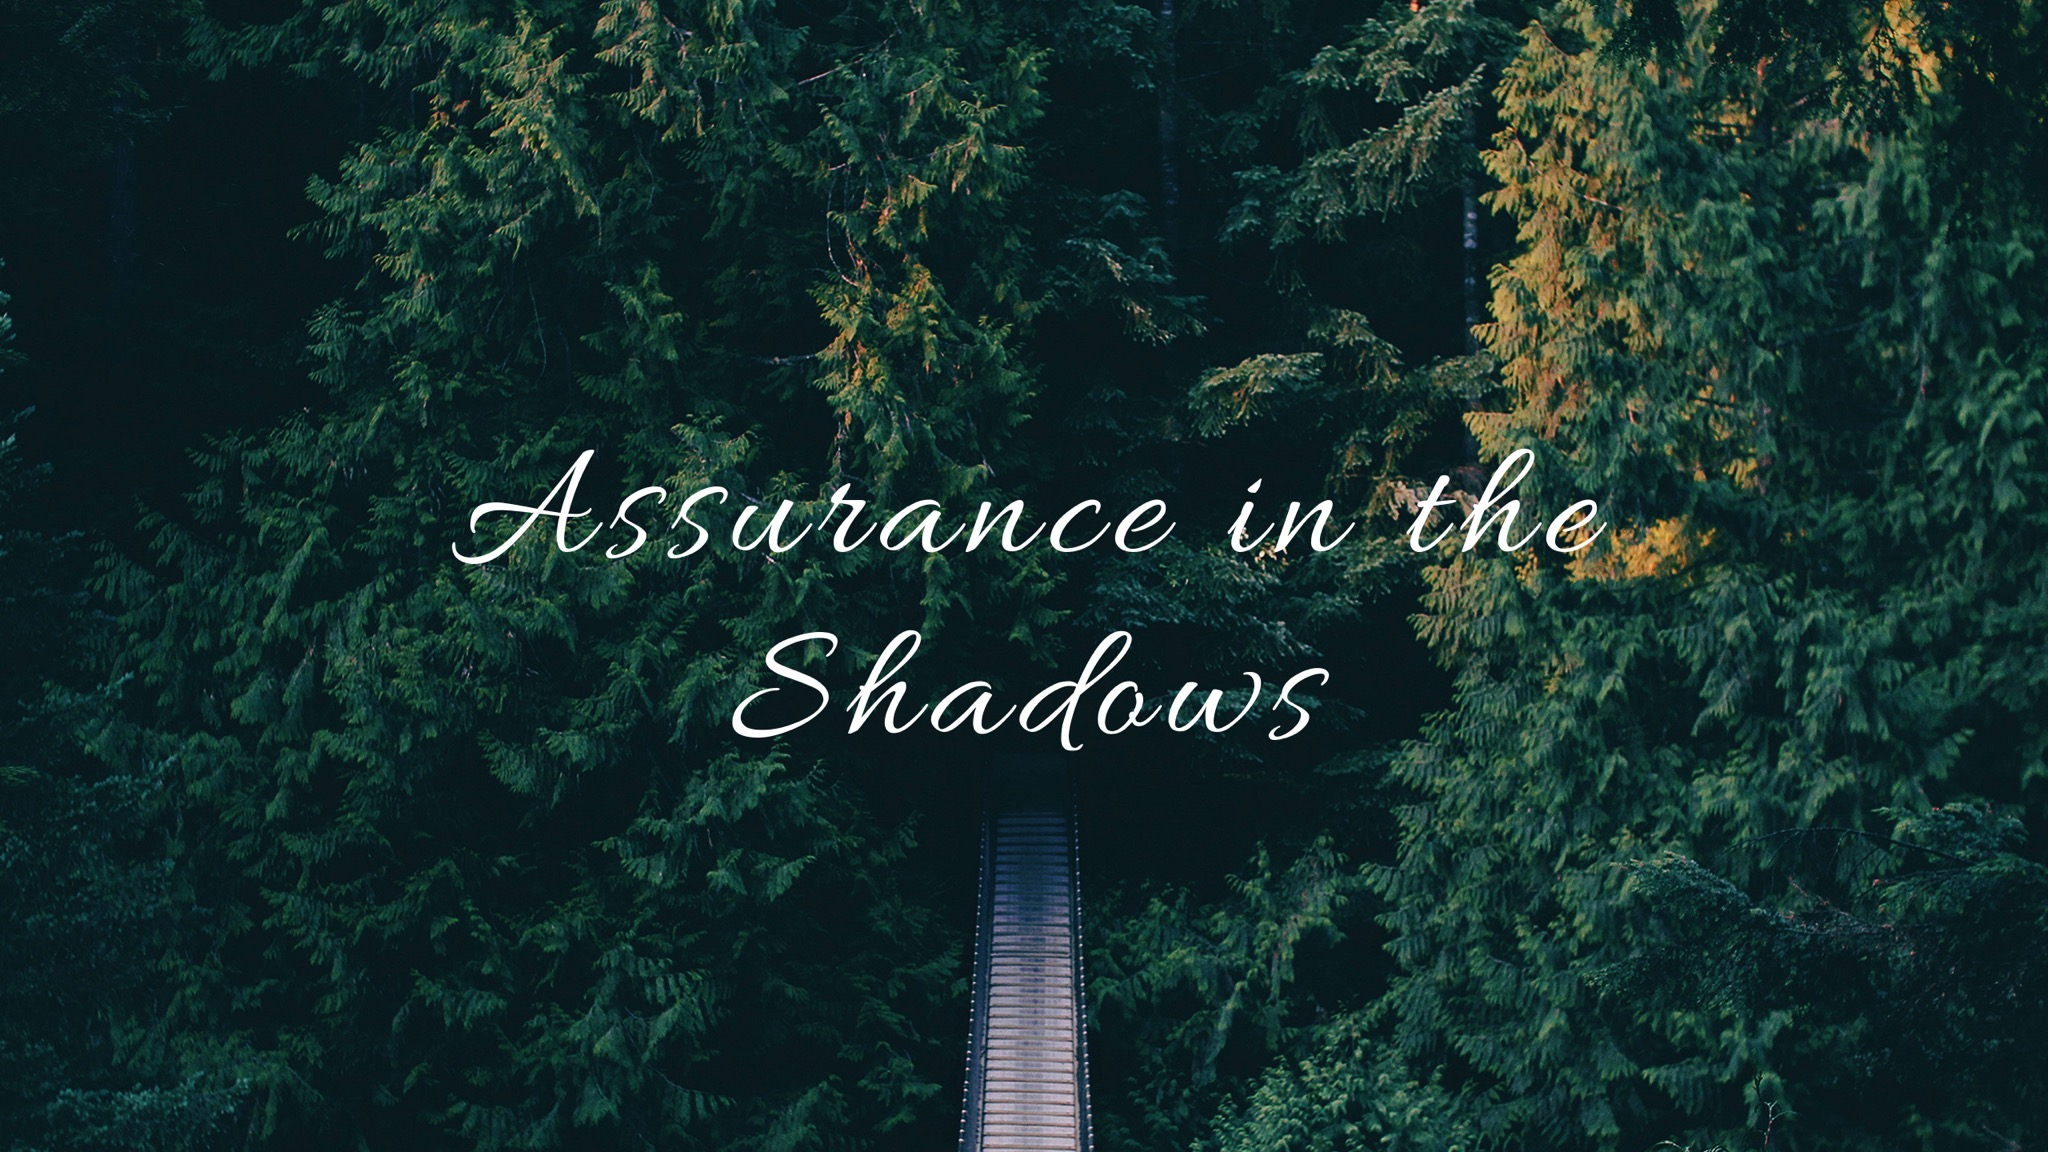 Assurance in the Shadows Image